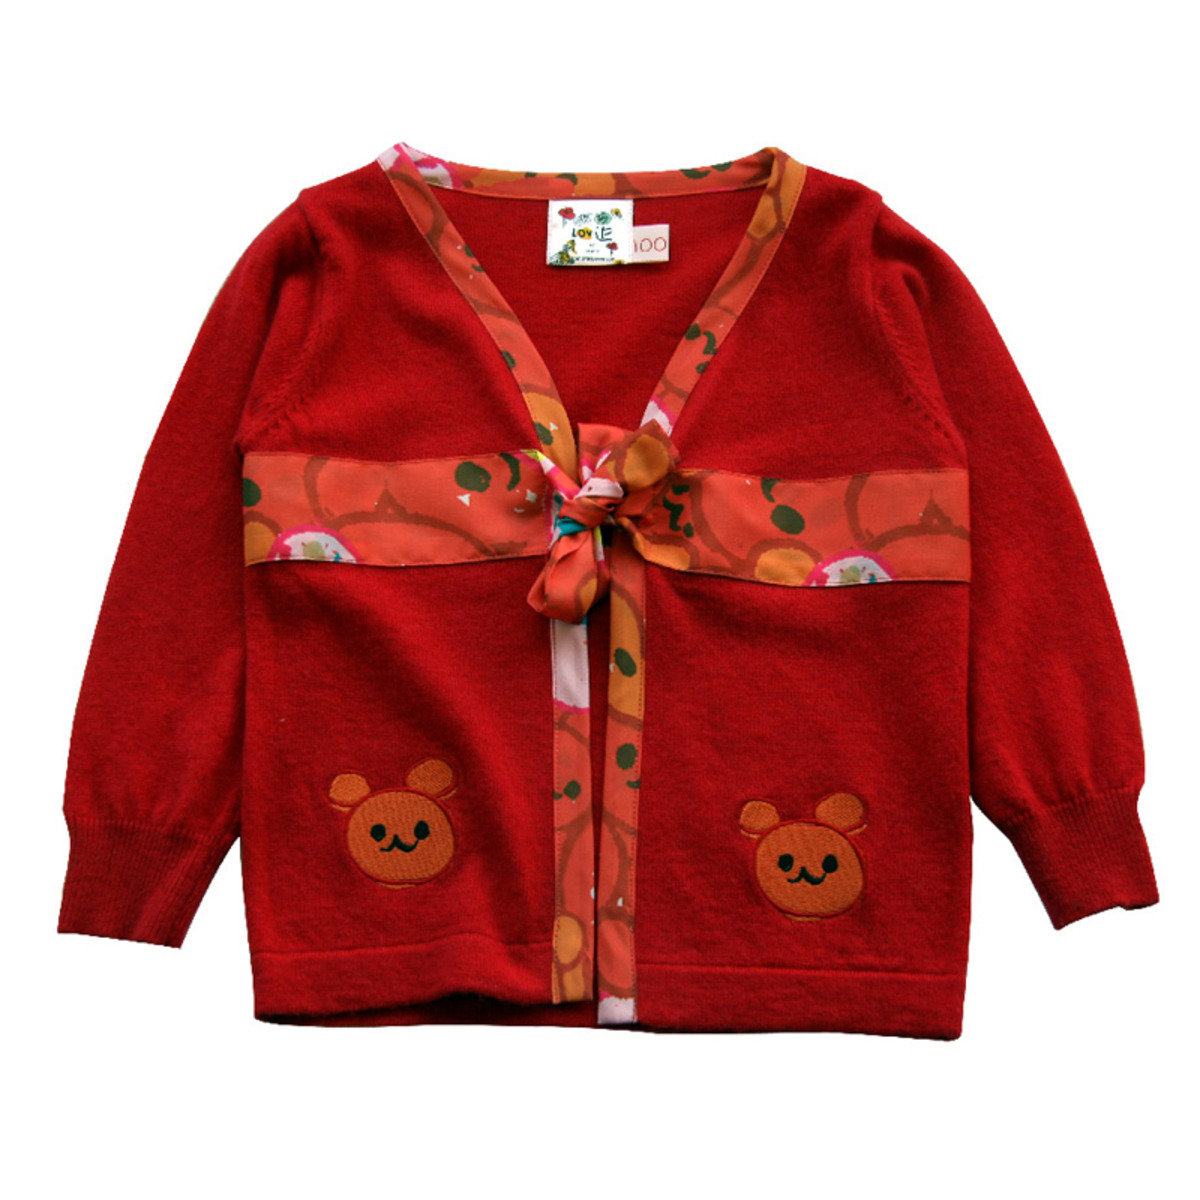 Lovie Bear Wool Sweater (Red)